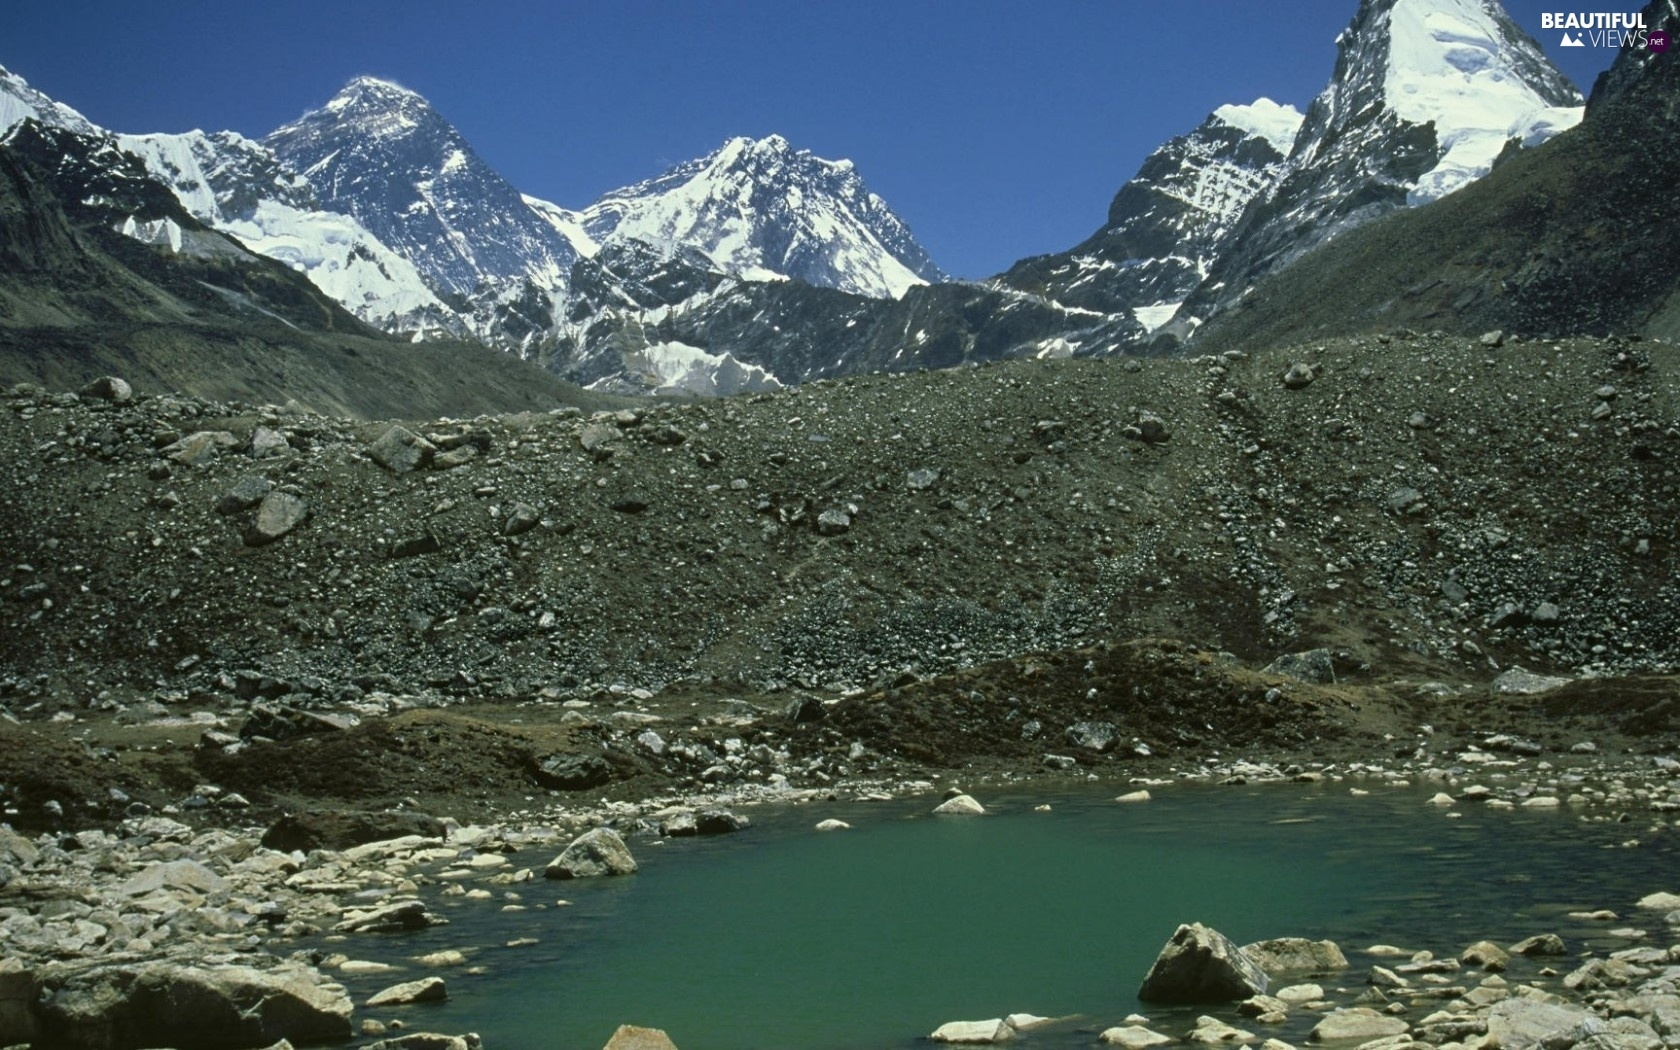 Mount, Everest, Park, Mountains, national, Nepal, China, Sagarmatha